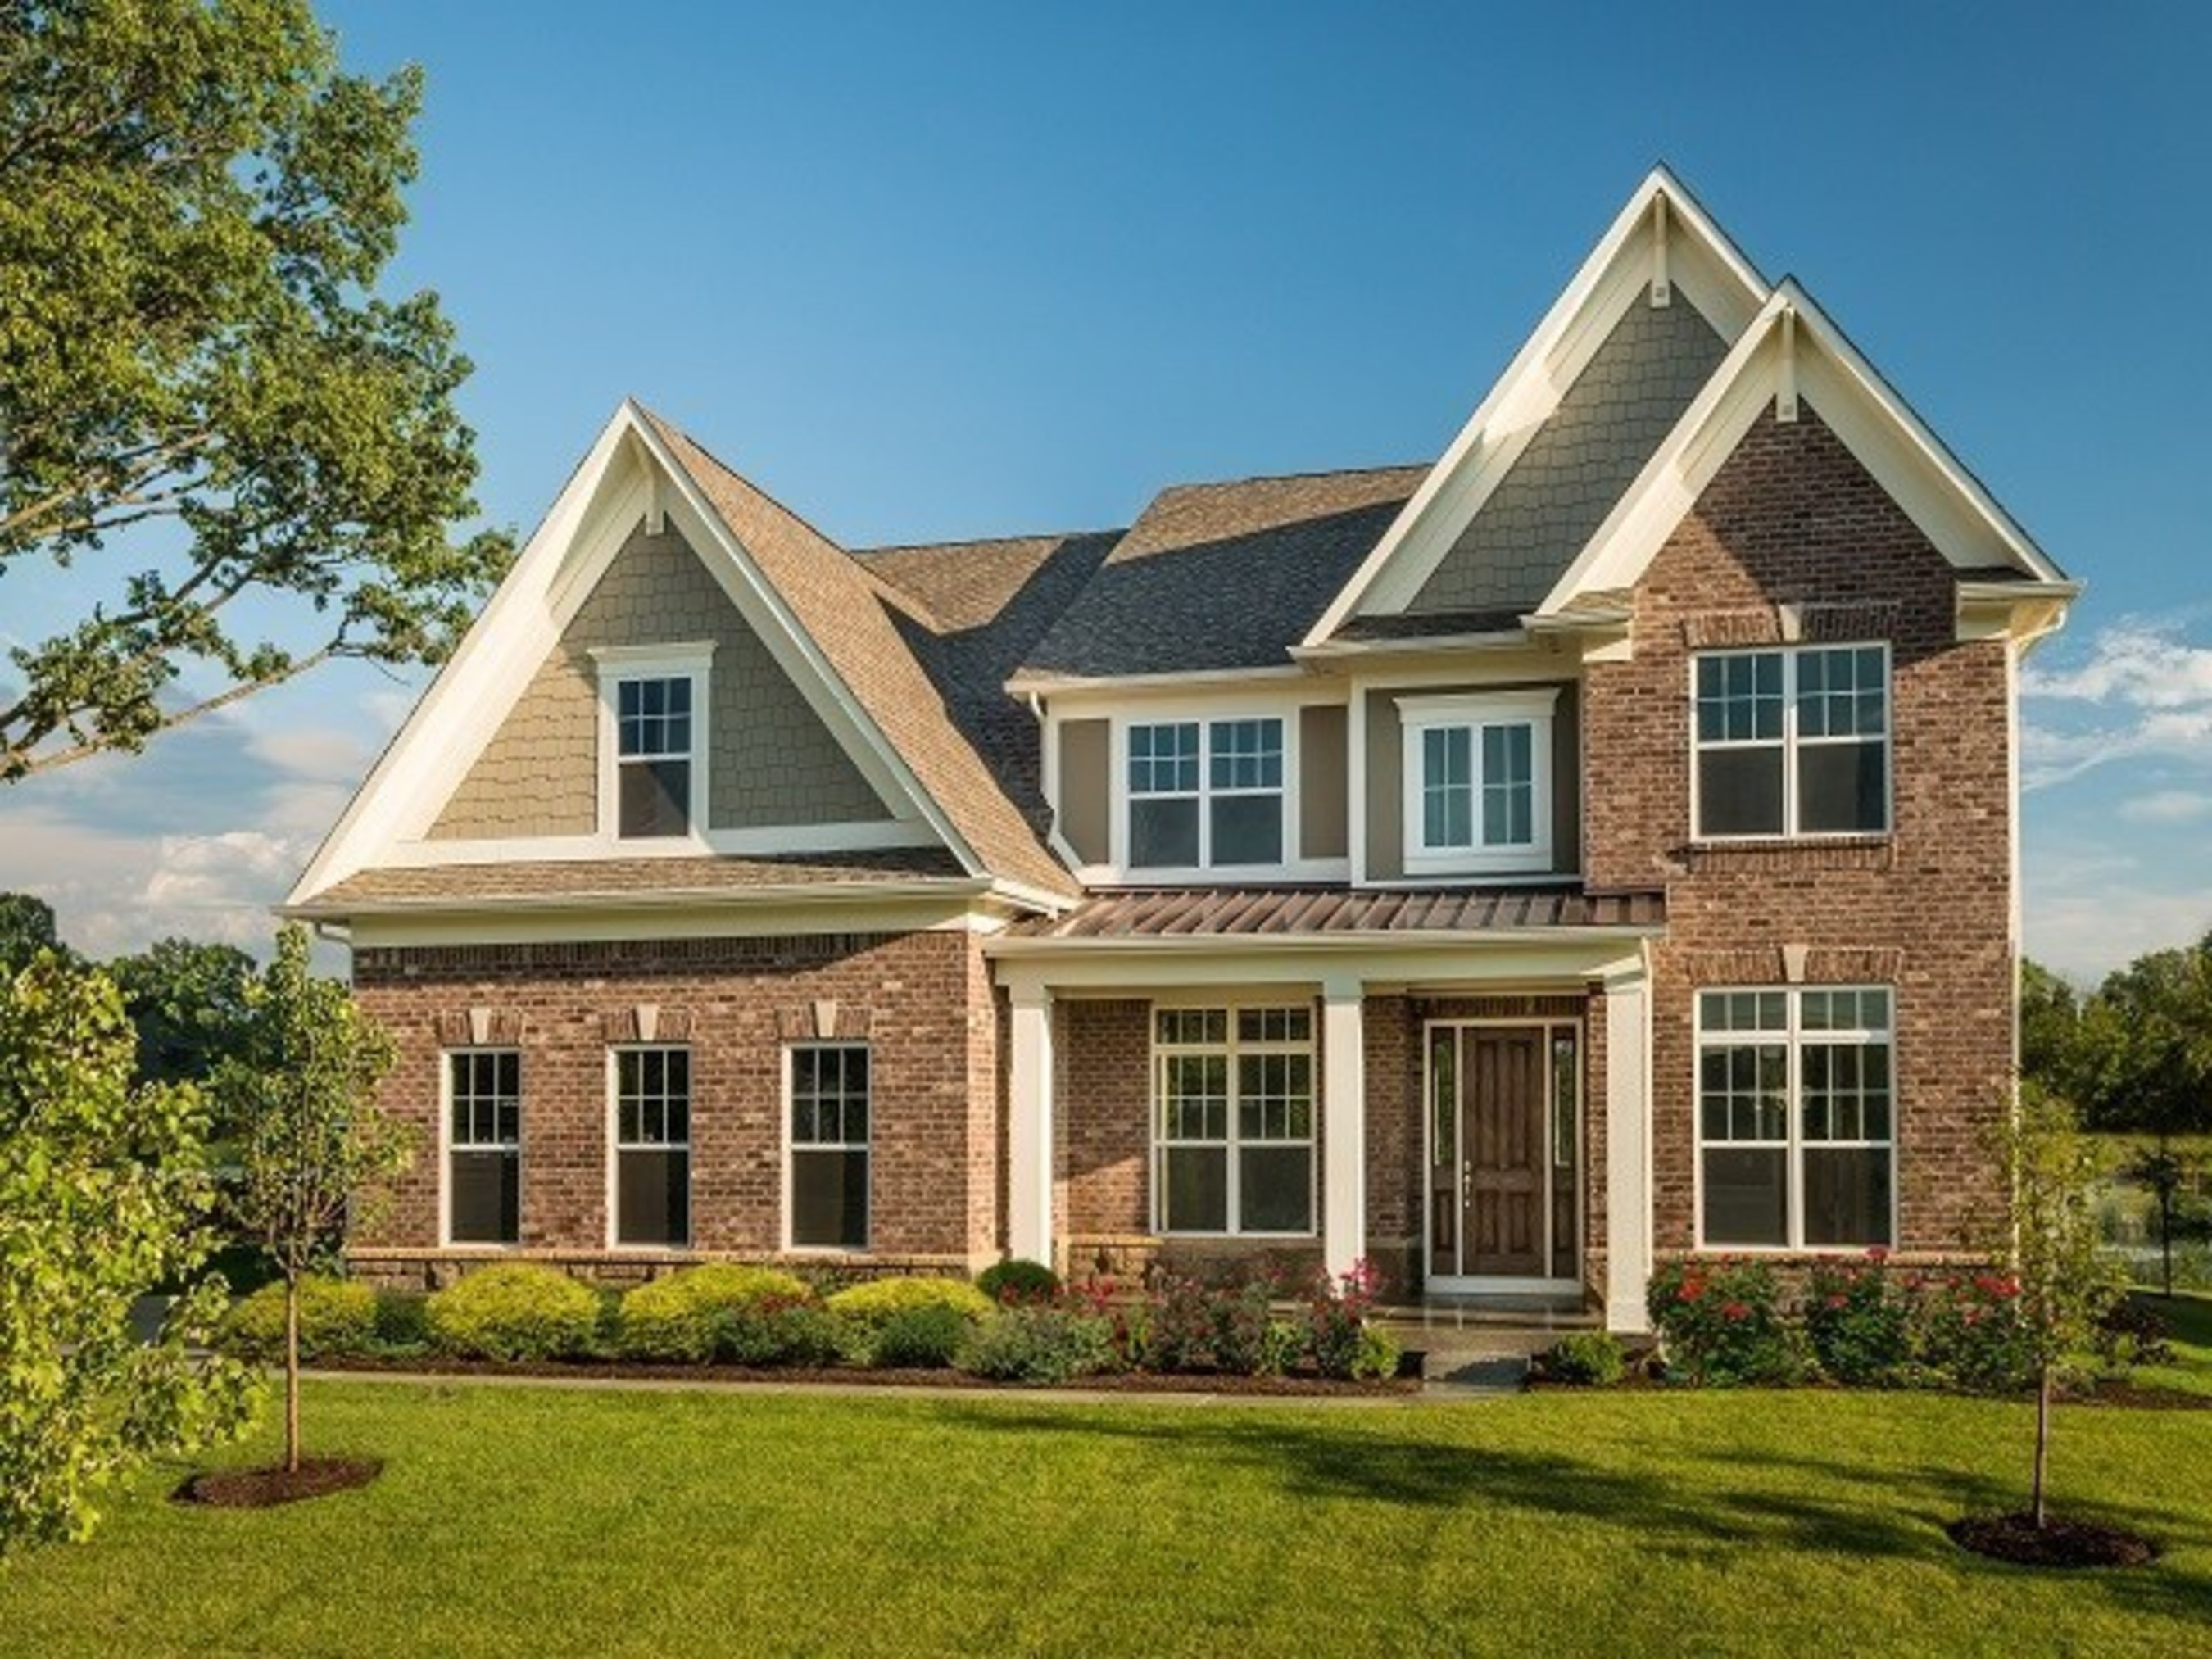 New Homes Now Available At Ashmoor In Carmel, IN